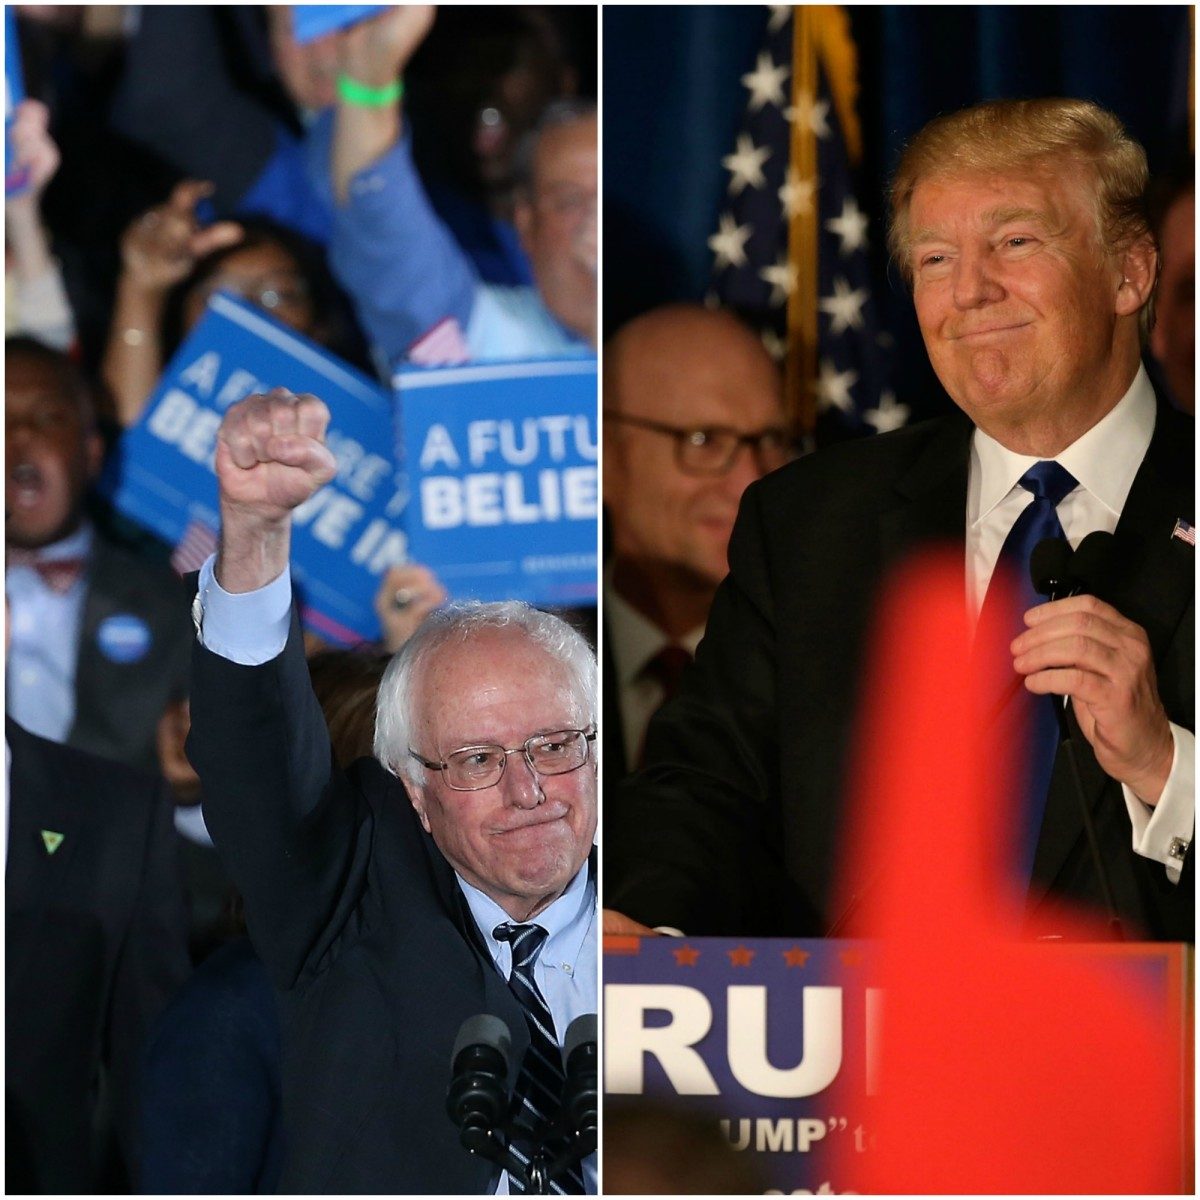 Bernie Sanders (left) and Donald Trump hold their respective rallies in New Hampshire. (Photos: Win McNamee/Getty Images; Matthew Cavanaugh/Getty Images)